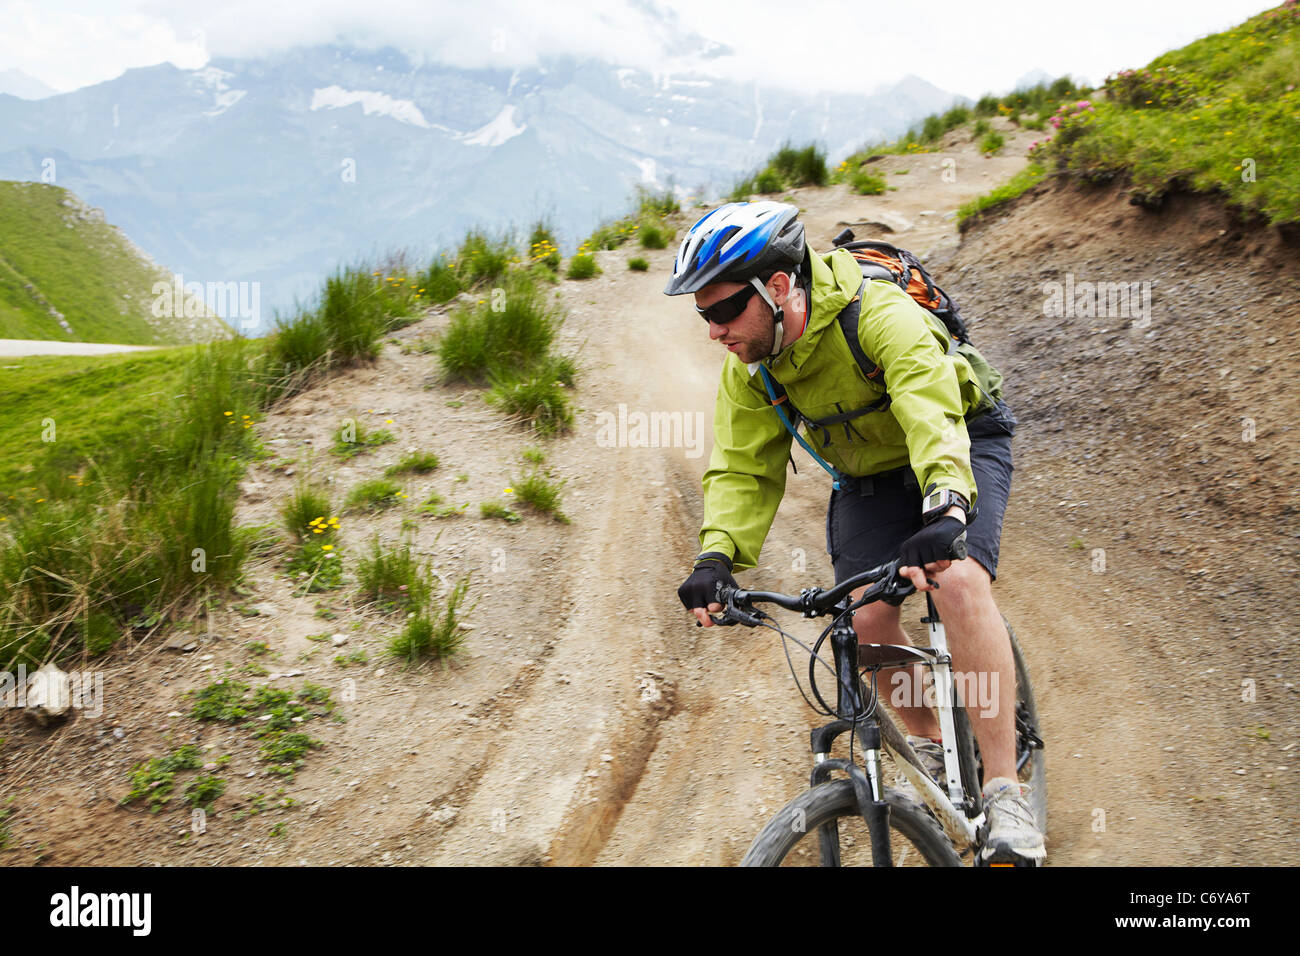 Mountain biker on dirt road - Stock Image